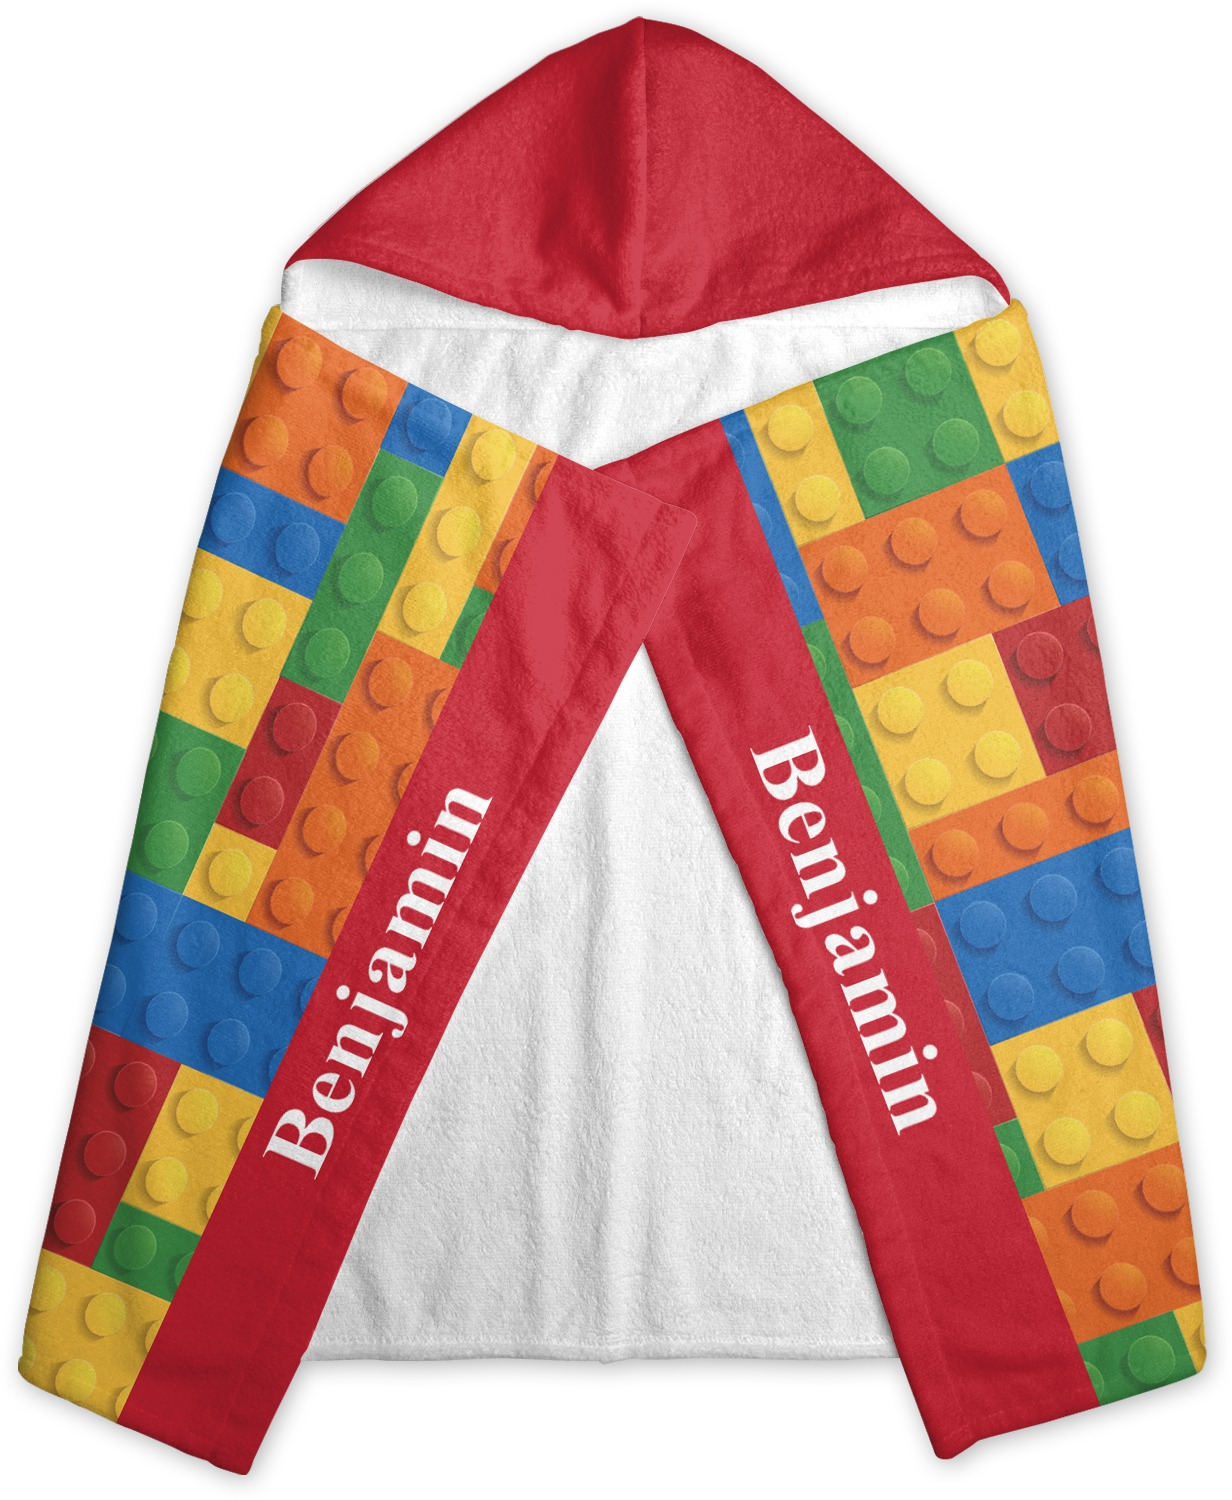 Building Blocks Hooded Towel Personalized Youcustomizeit